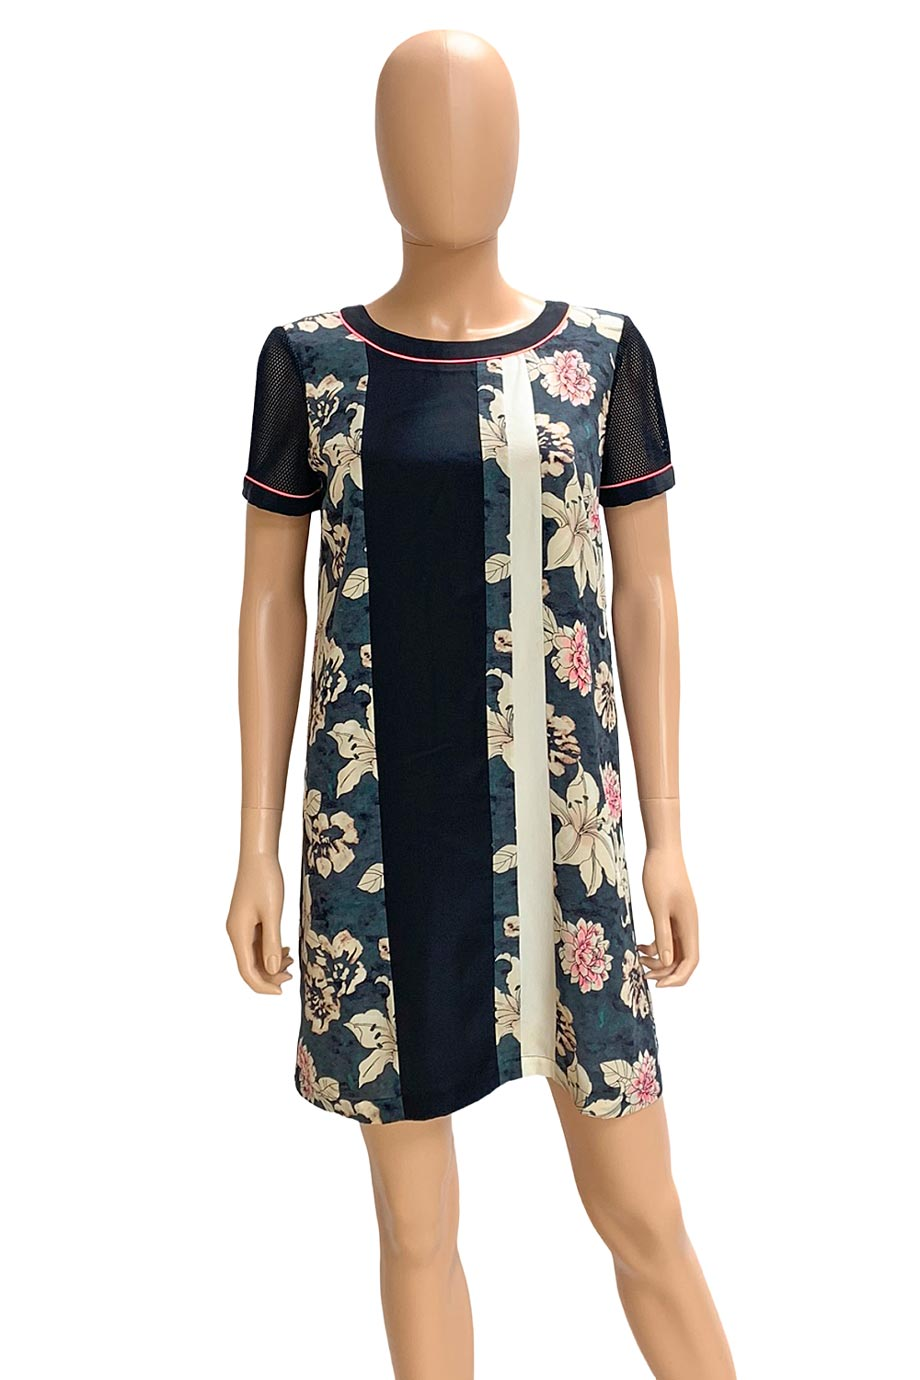 Elizabeth And James Silk Floral Montana Shift Dress / Sz S